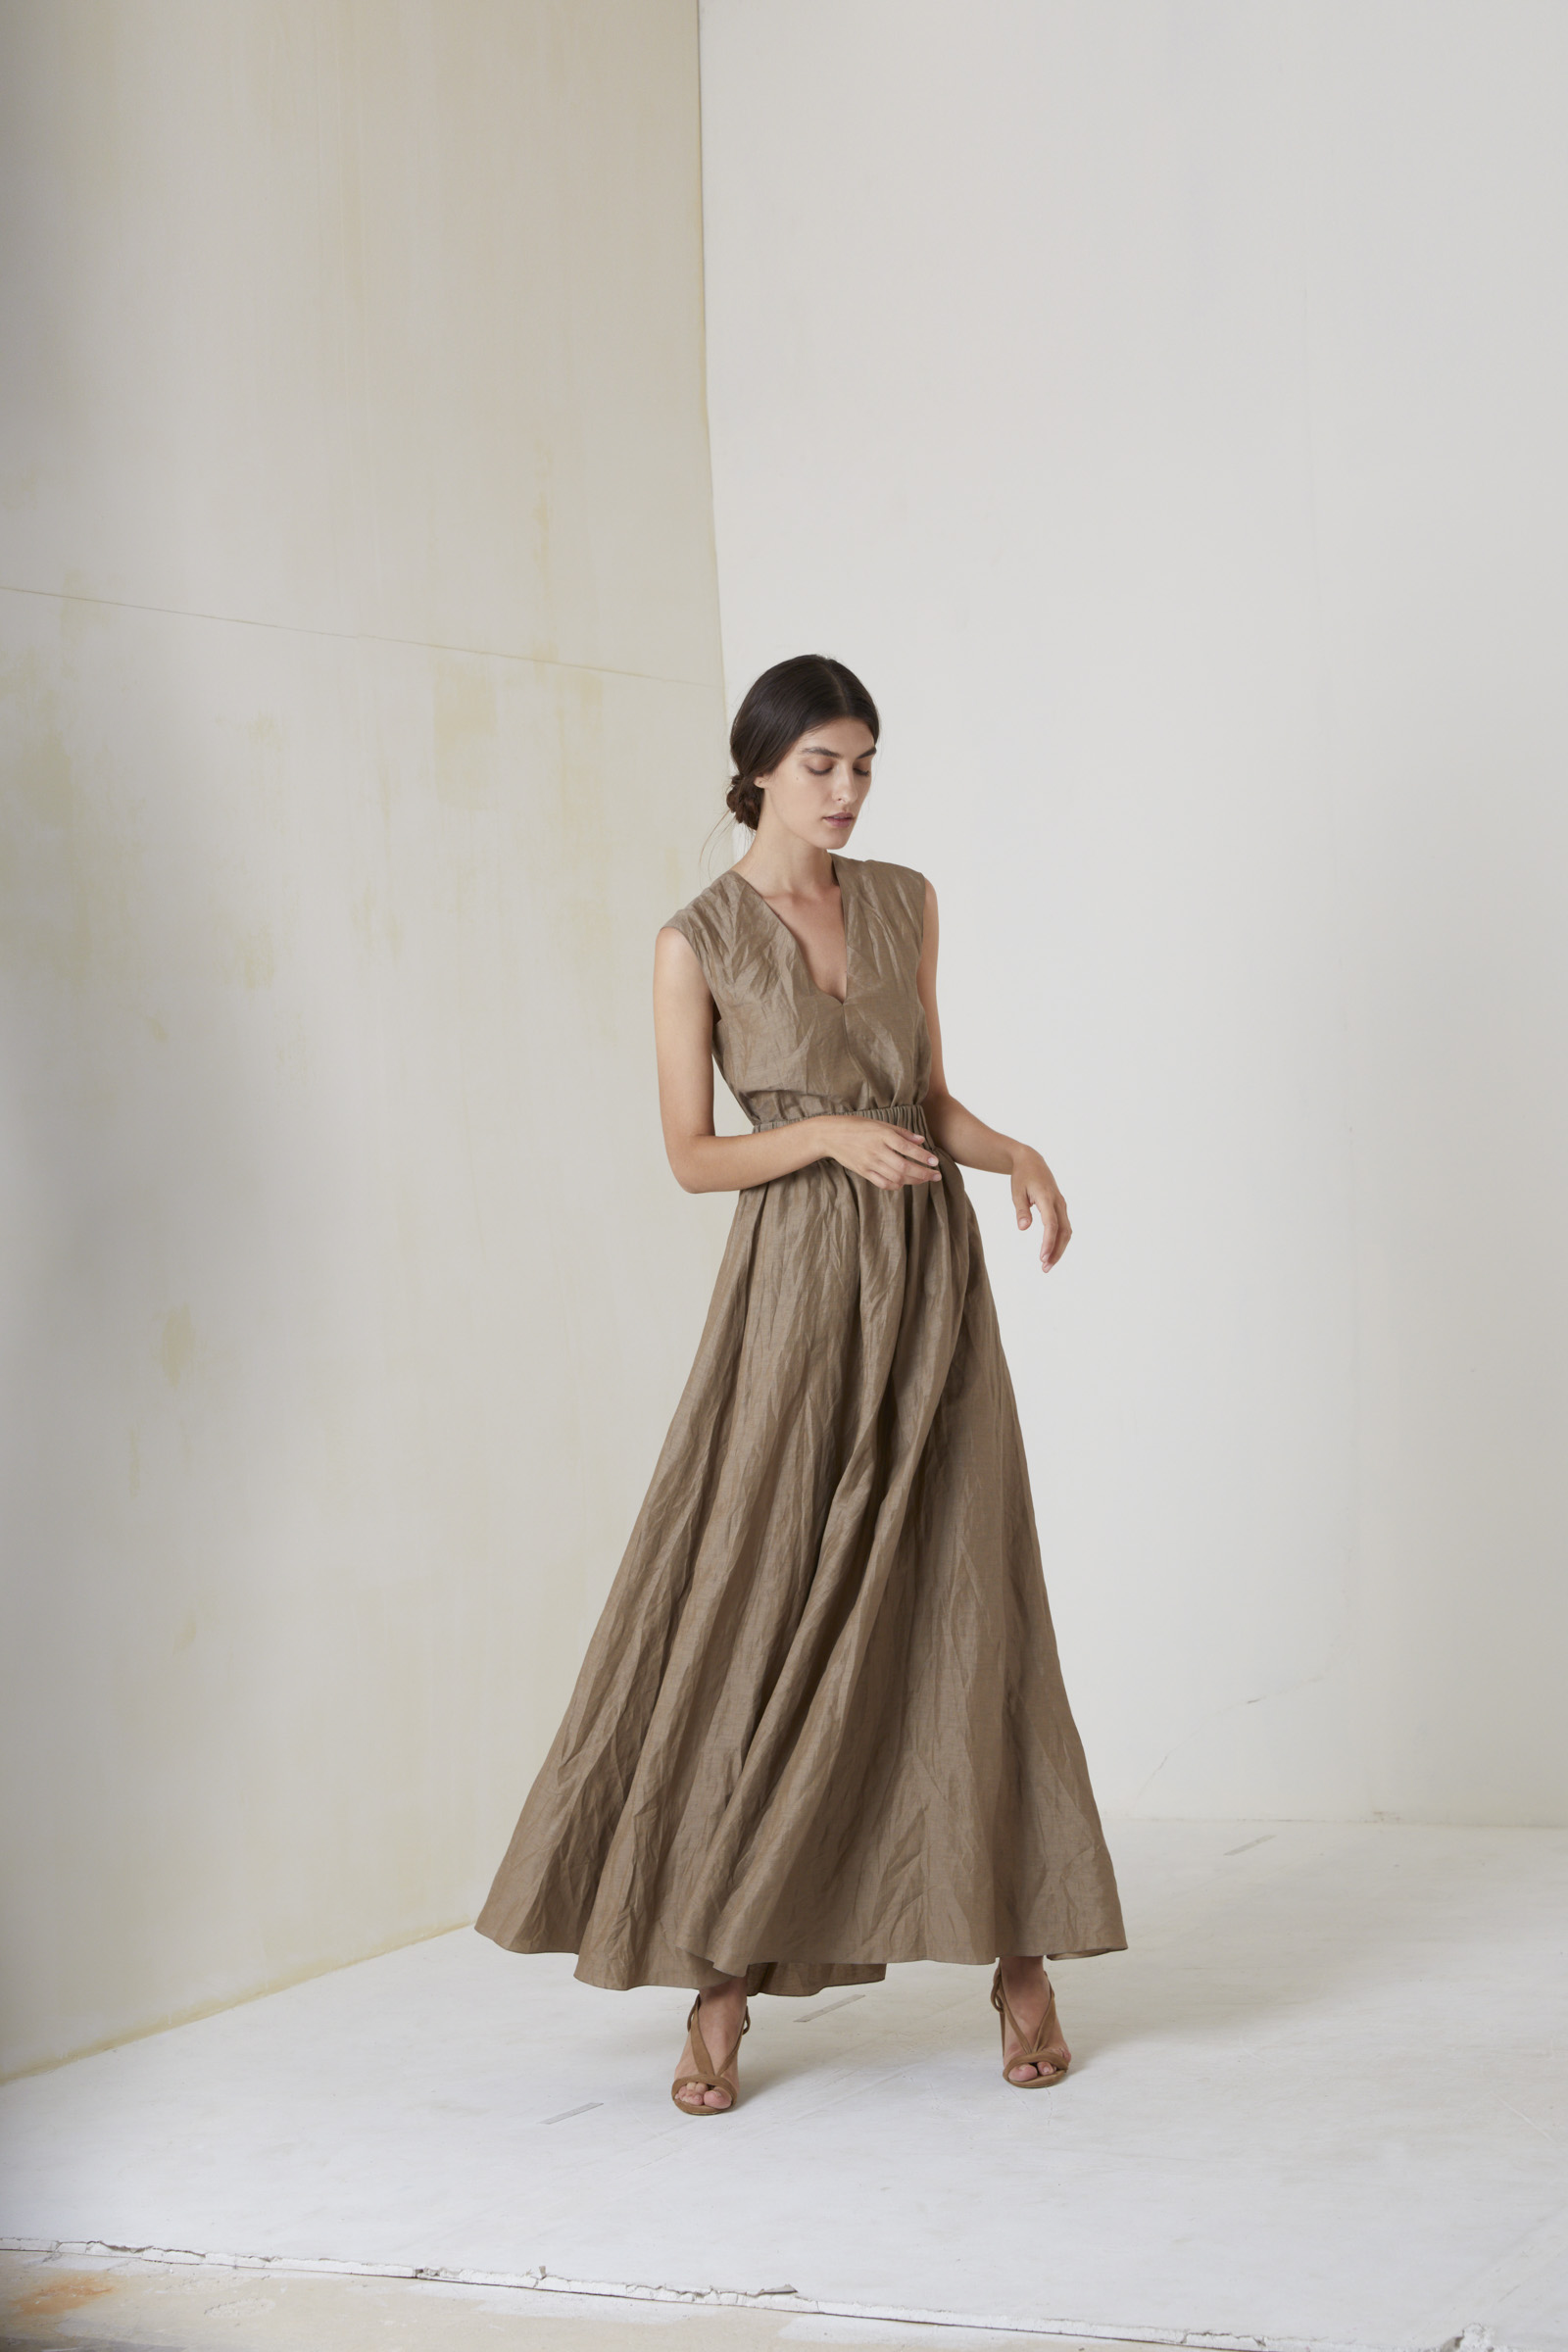 PIRANDELLO, LONG MOCHA SKIRT - Cortana